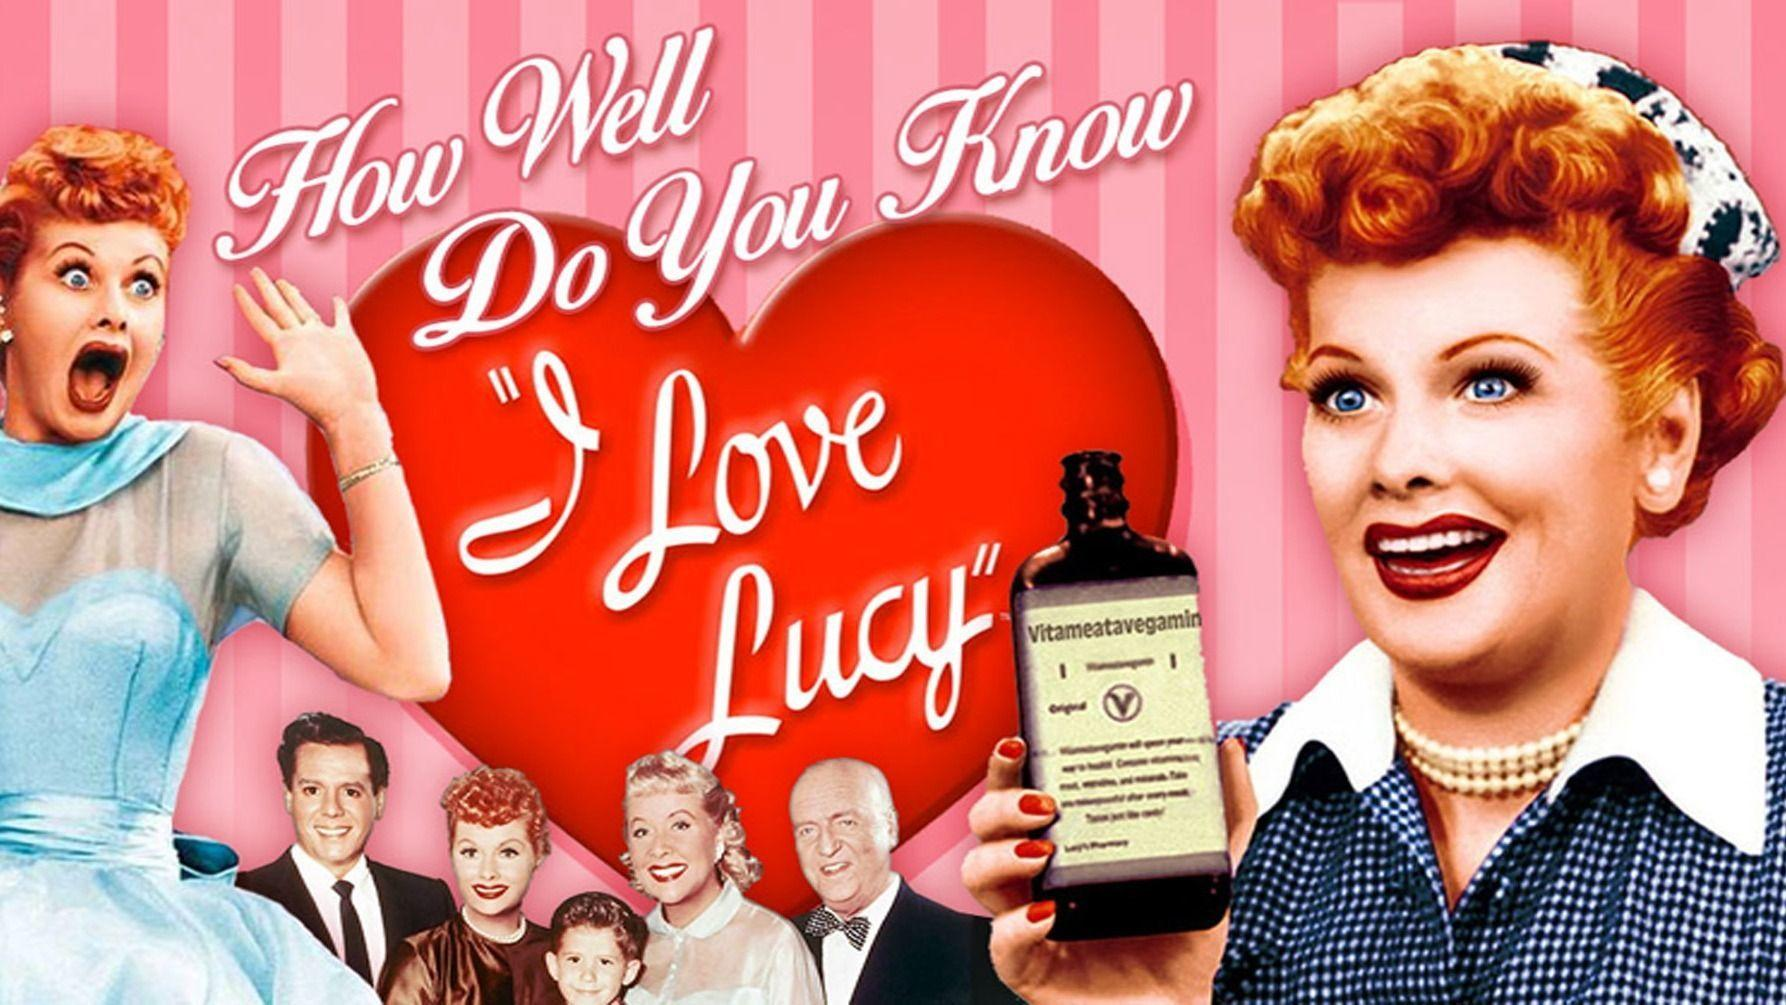 108100 image highres 490985965 - ONLINE LIVE- I Love Lucy Trivia! Fundraiser